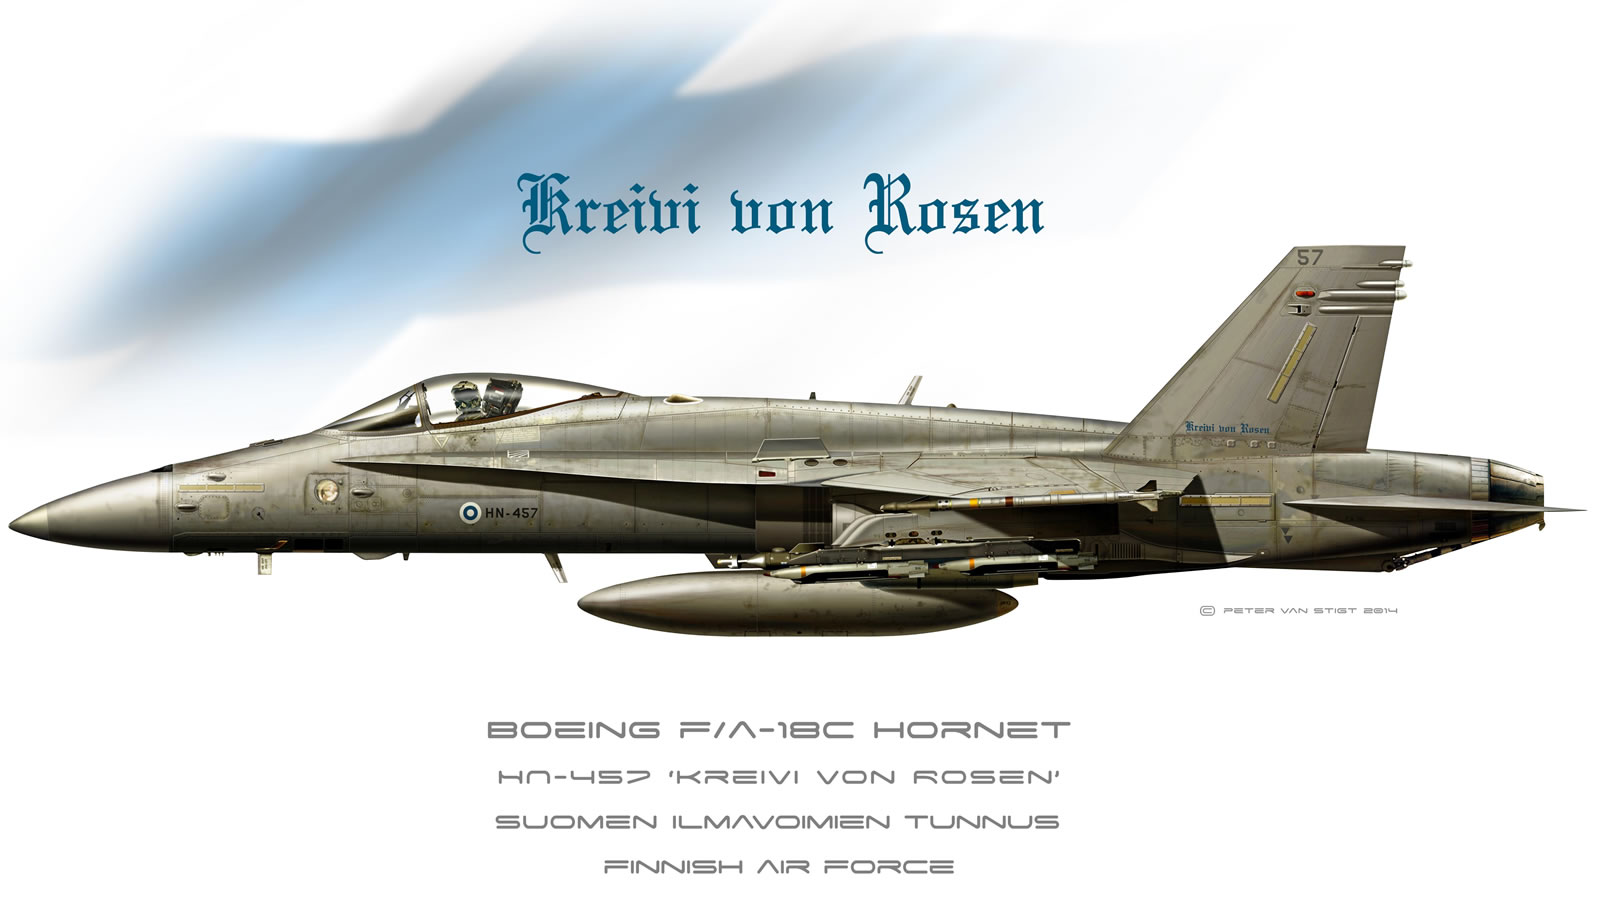 Finland Air Force Hornet Profile